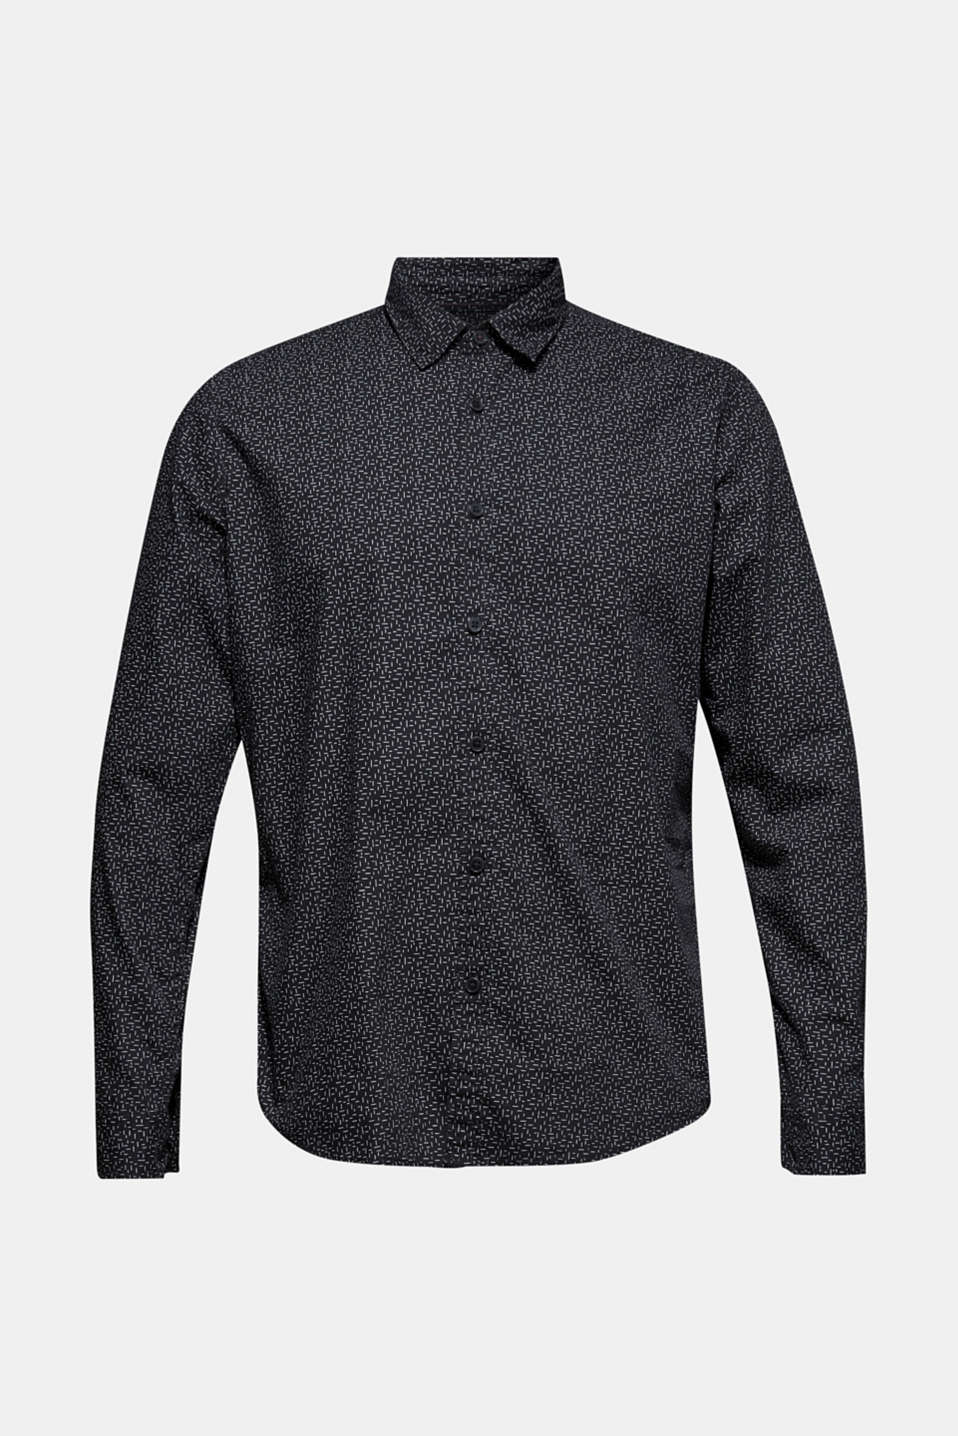 Printed shirt, 100% cotton, BLACK, detail image number 8